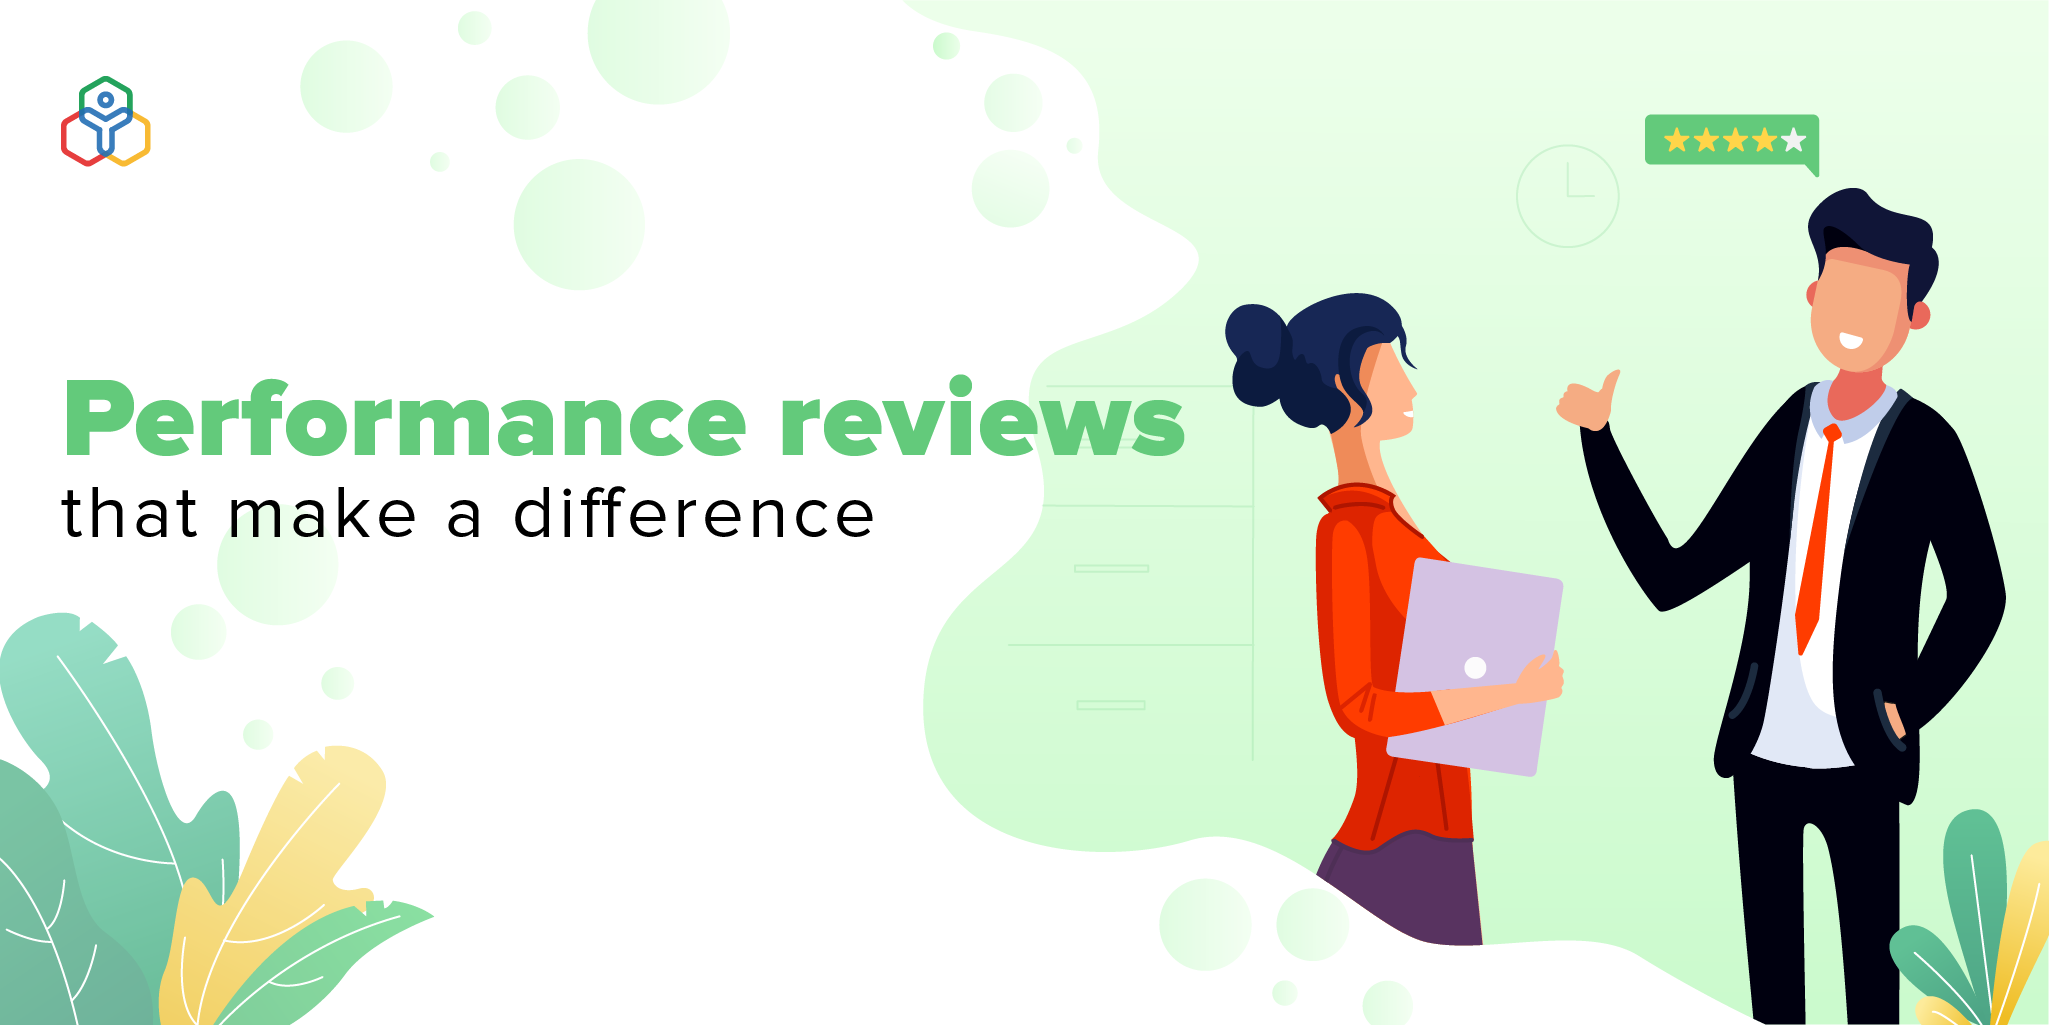 A manager's guide to delivering effective performance reviews